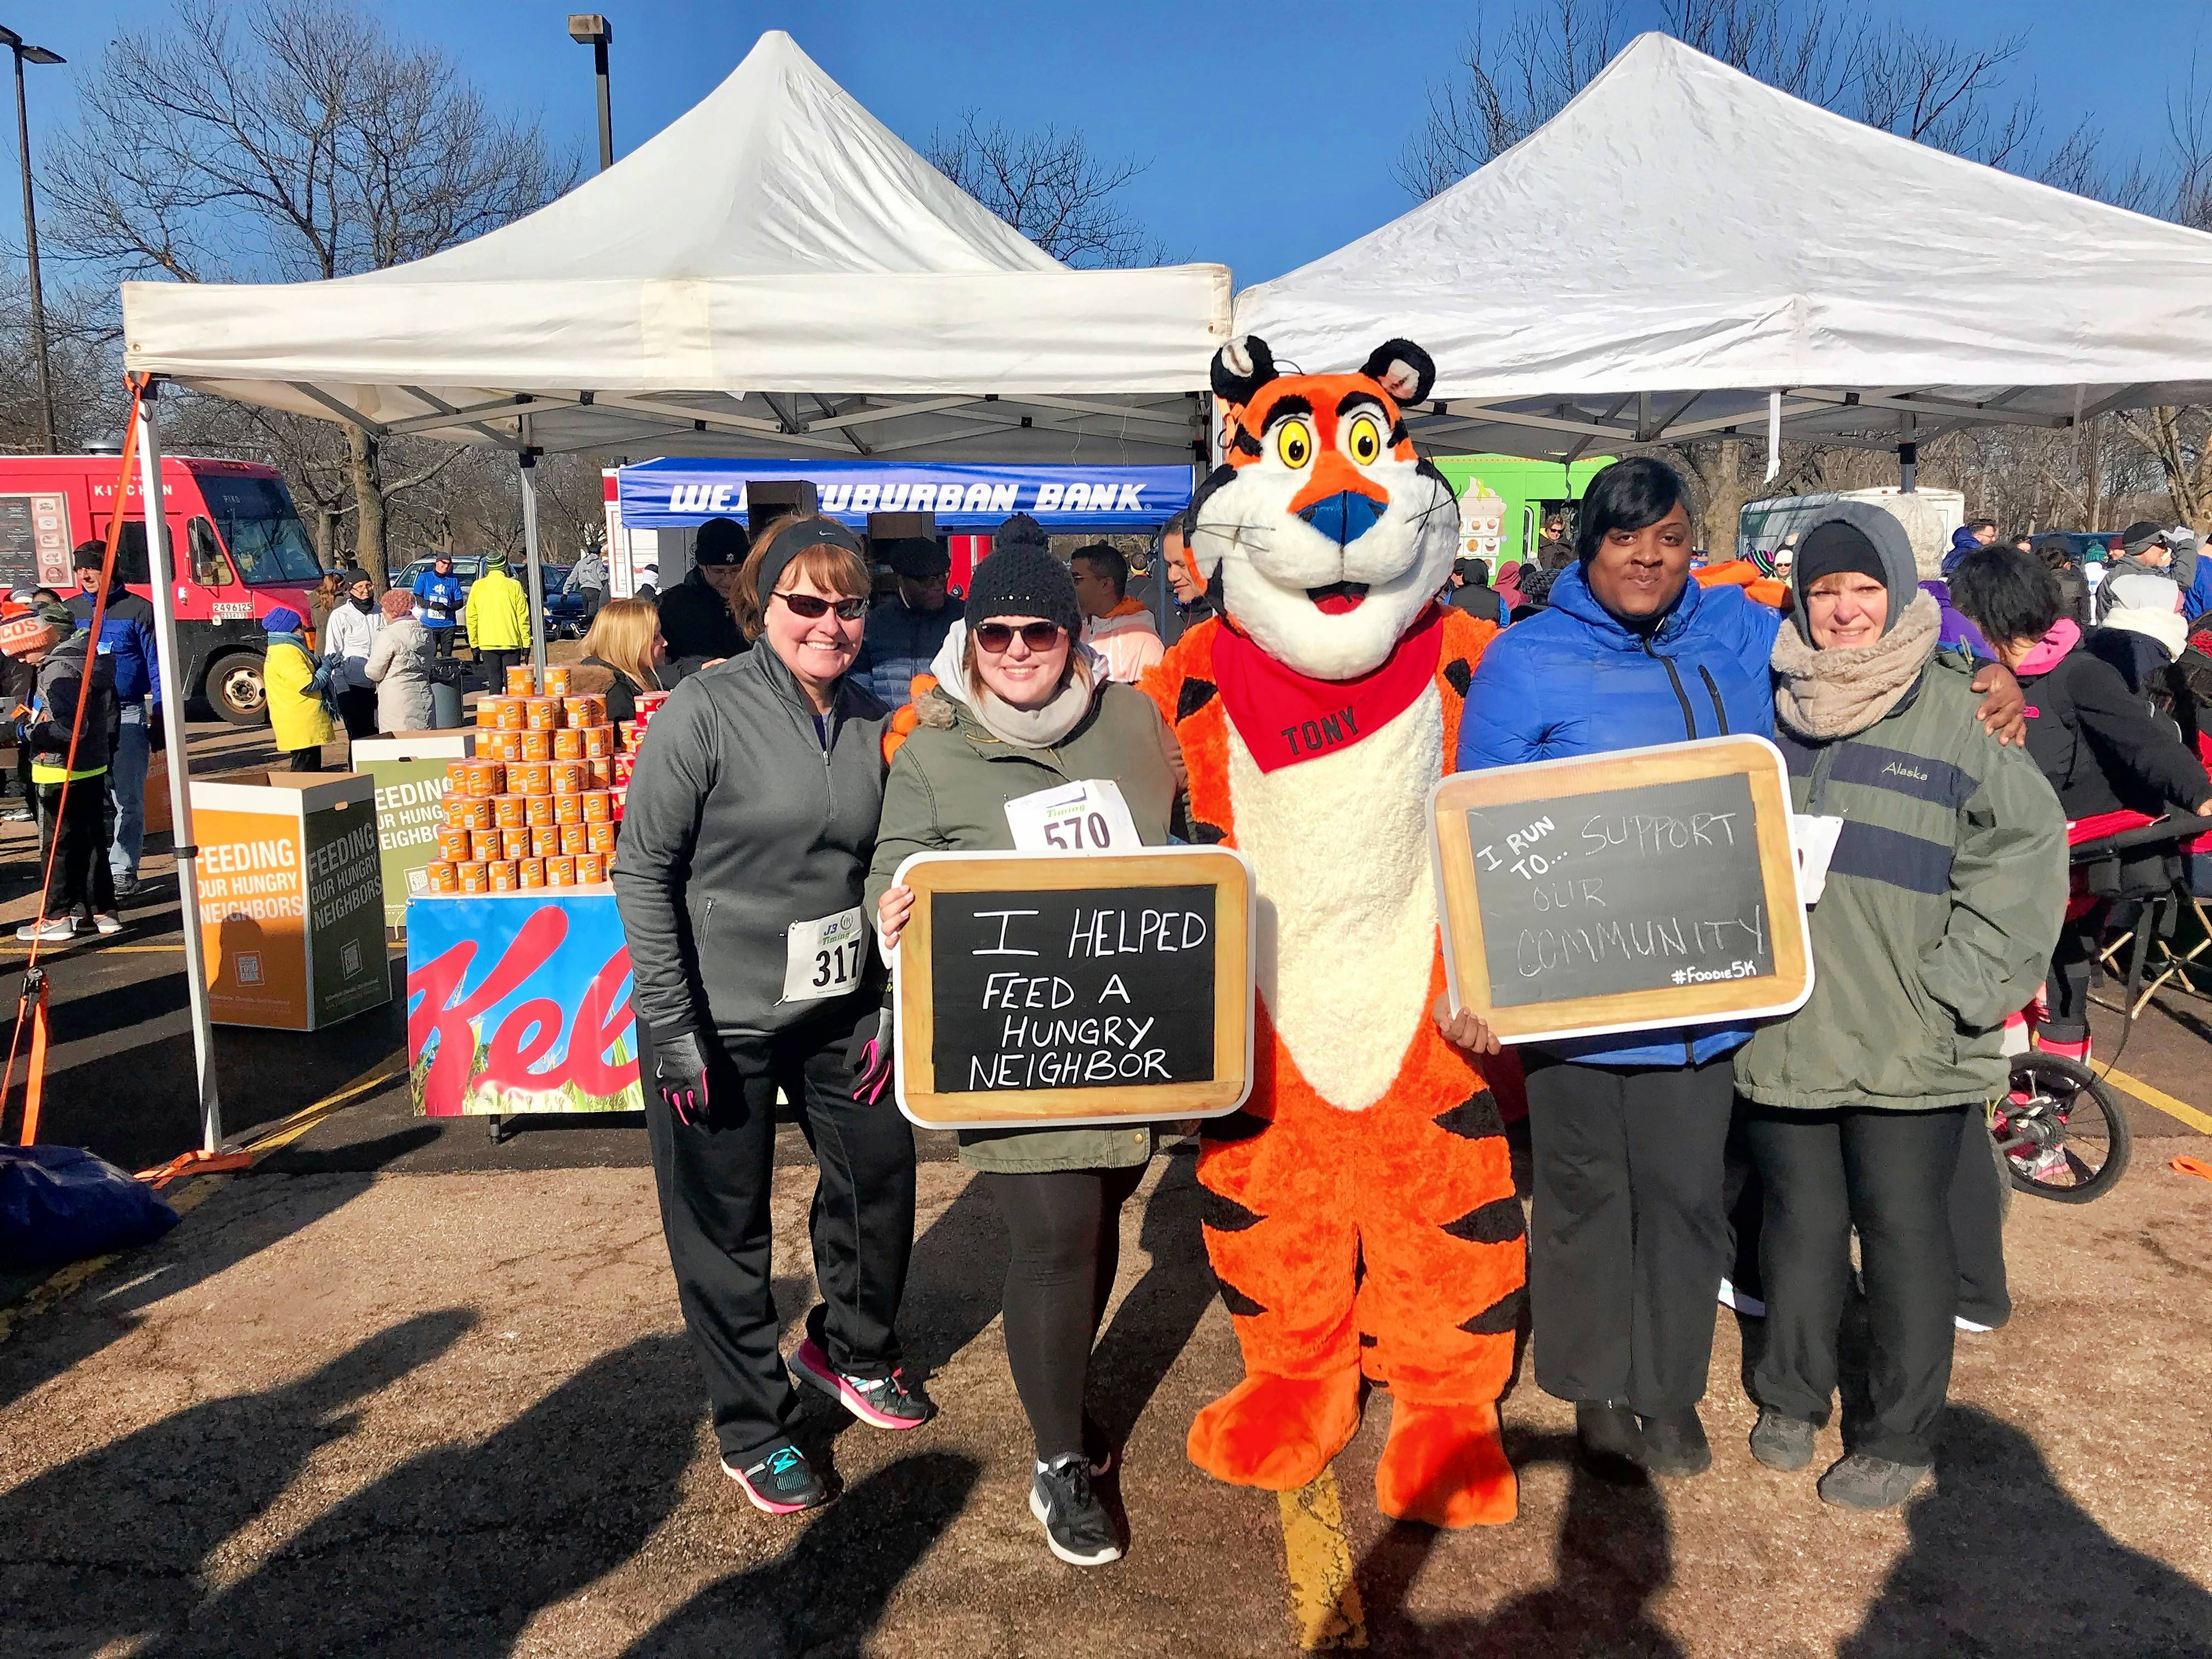 The cold weather didn't stop Marriott Suits Downers Grove and Marriott Oak Brook's Marriott Bod Squad from participating in Northern Illinois Food Bank's Foodie 5K. From left to right, Kristen Duncan, Samantha Jones, Tony the Tiger, Cassandra Johnson, and Katrina Jones.